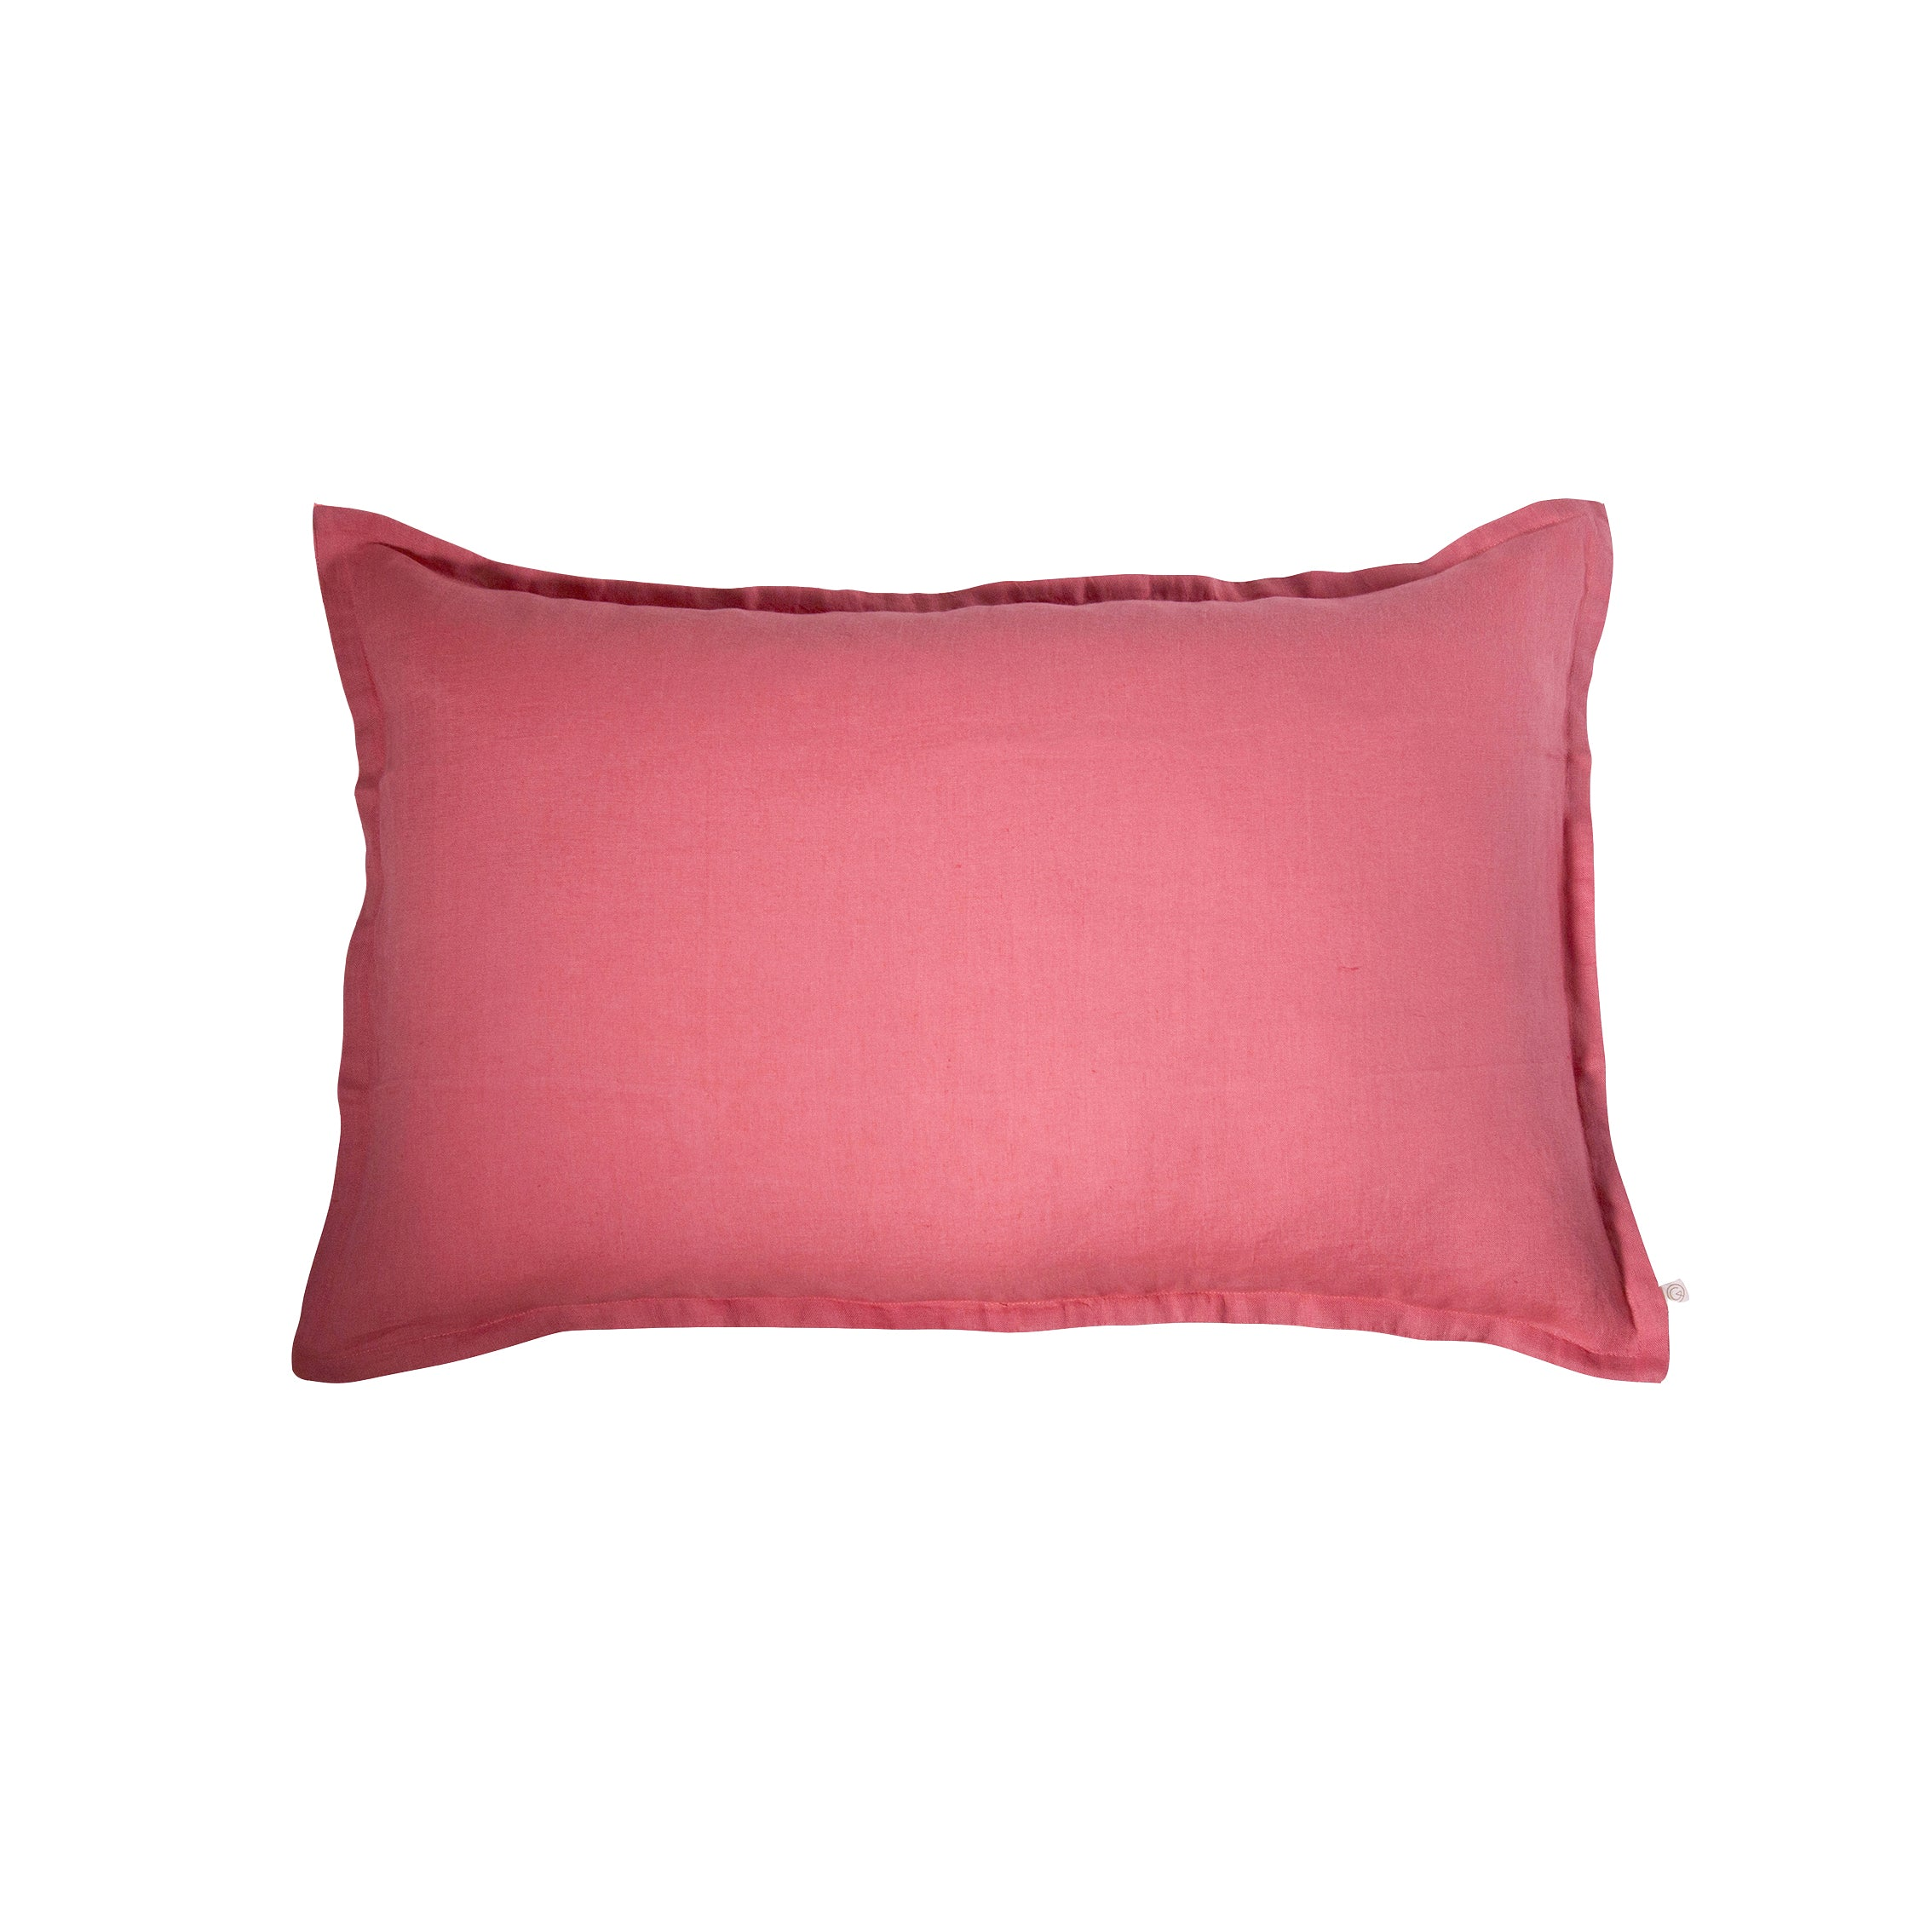 Pillowcase - LINEN (Red)